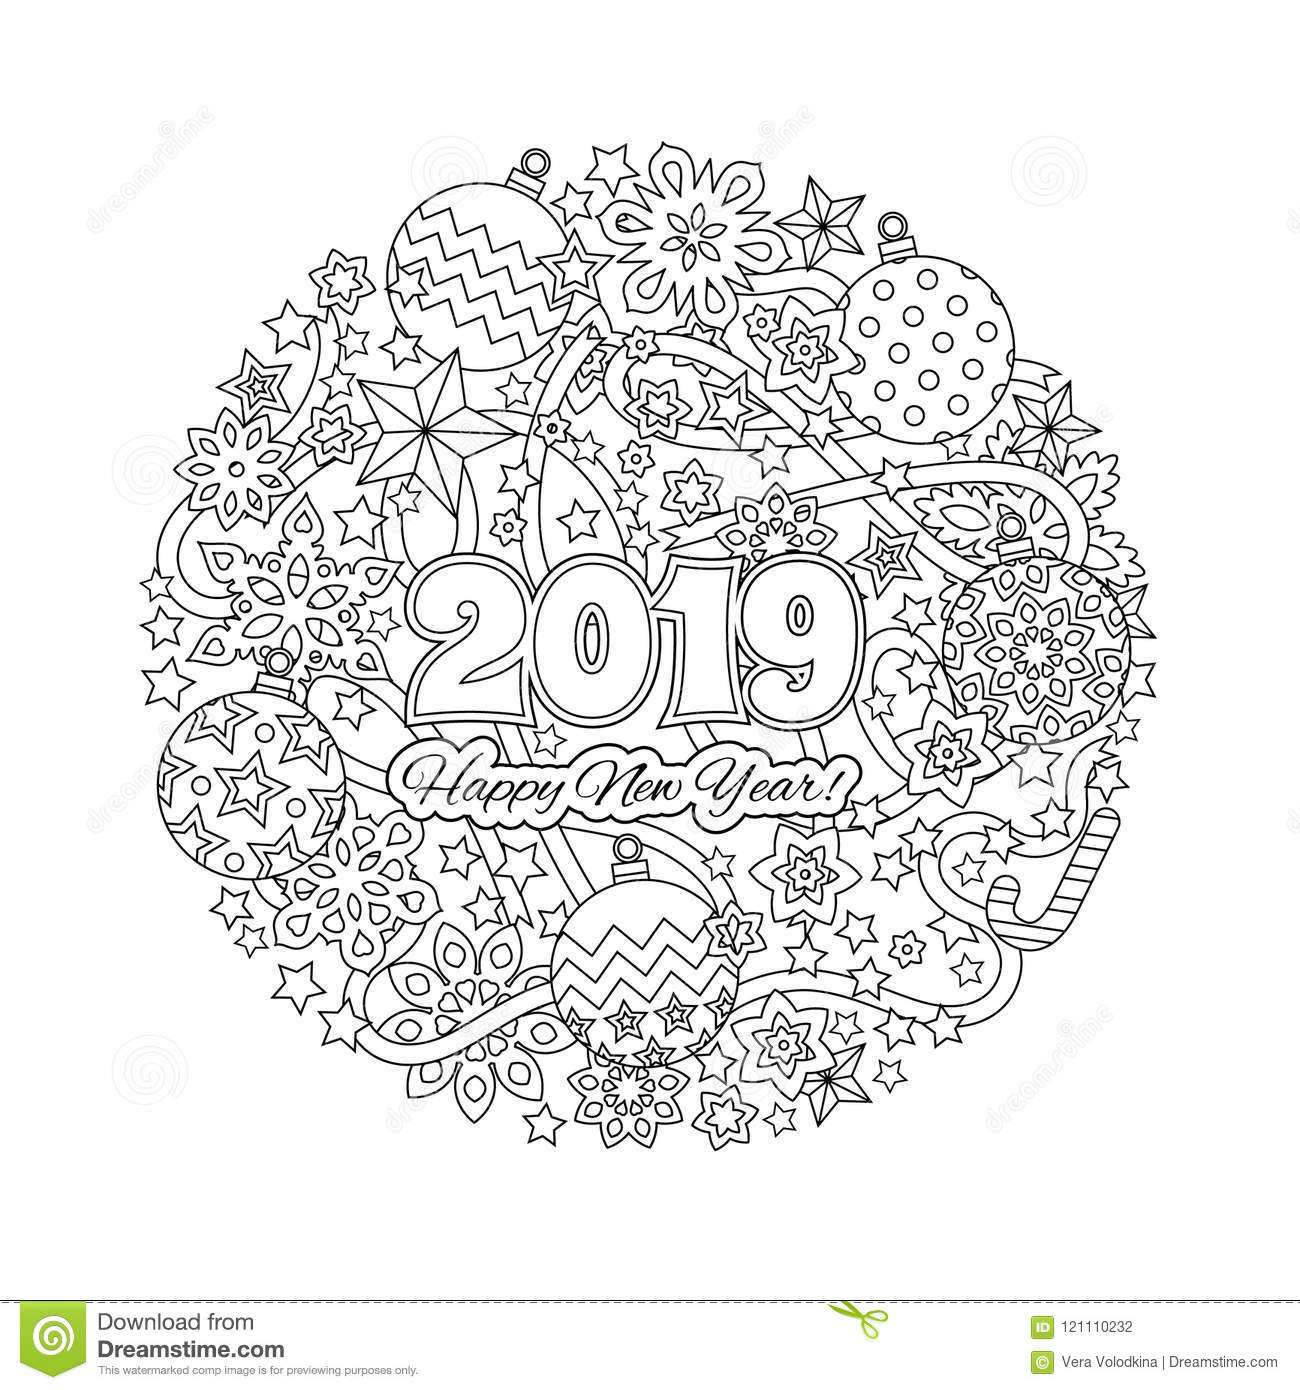 New Year Congratulation Card With Numbers 2018 On Winter Holiday Background Christmas Mandala Antistress Coloring Book For Adults Zen Monochrome Graphic